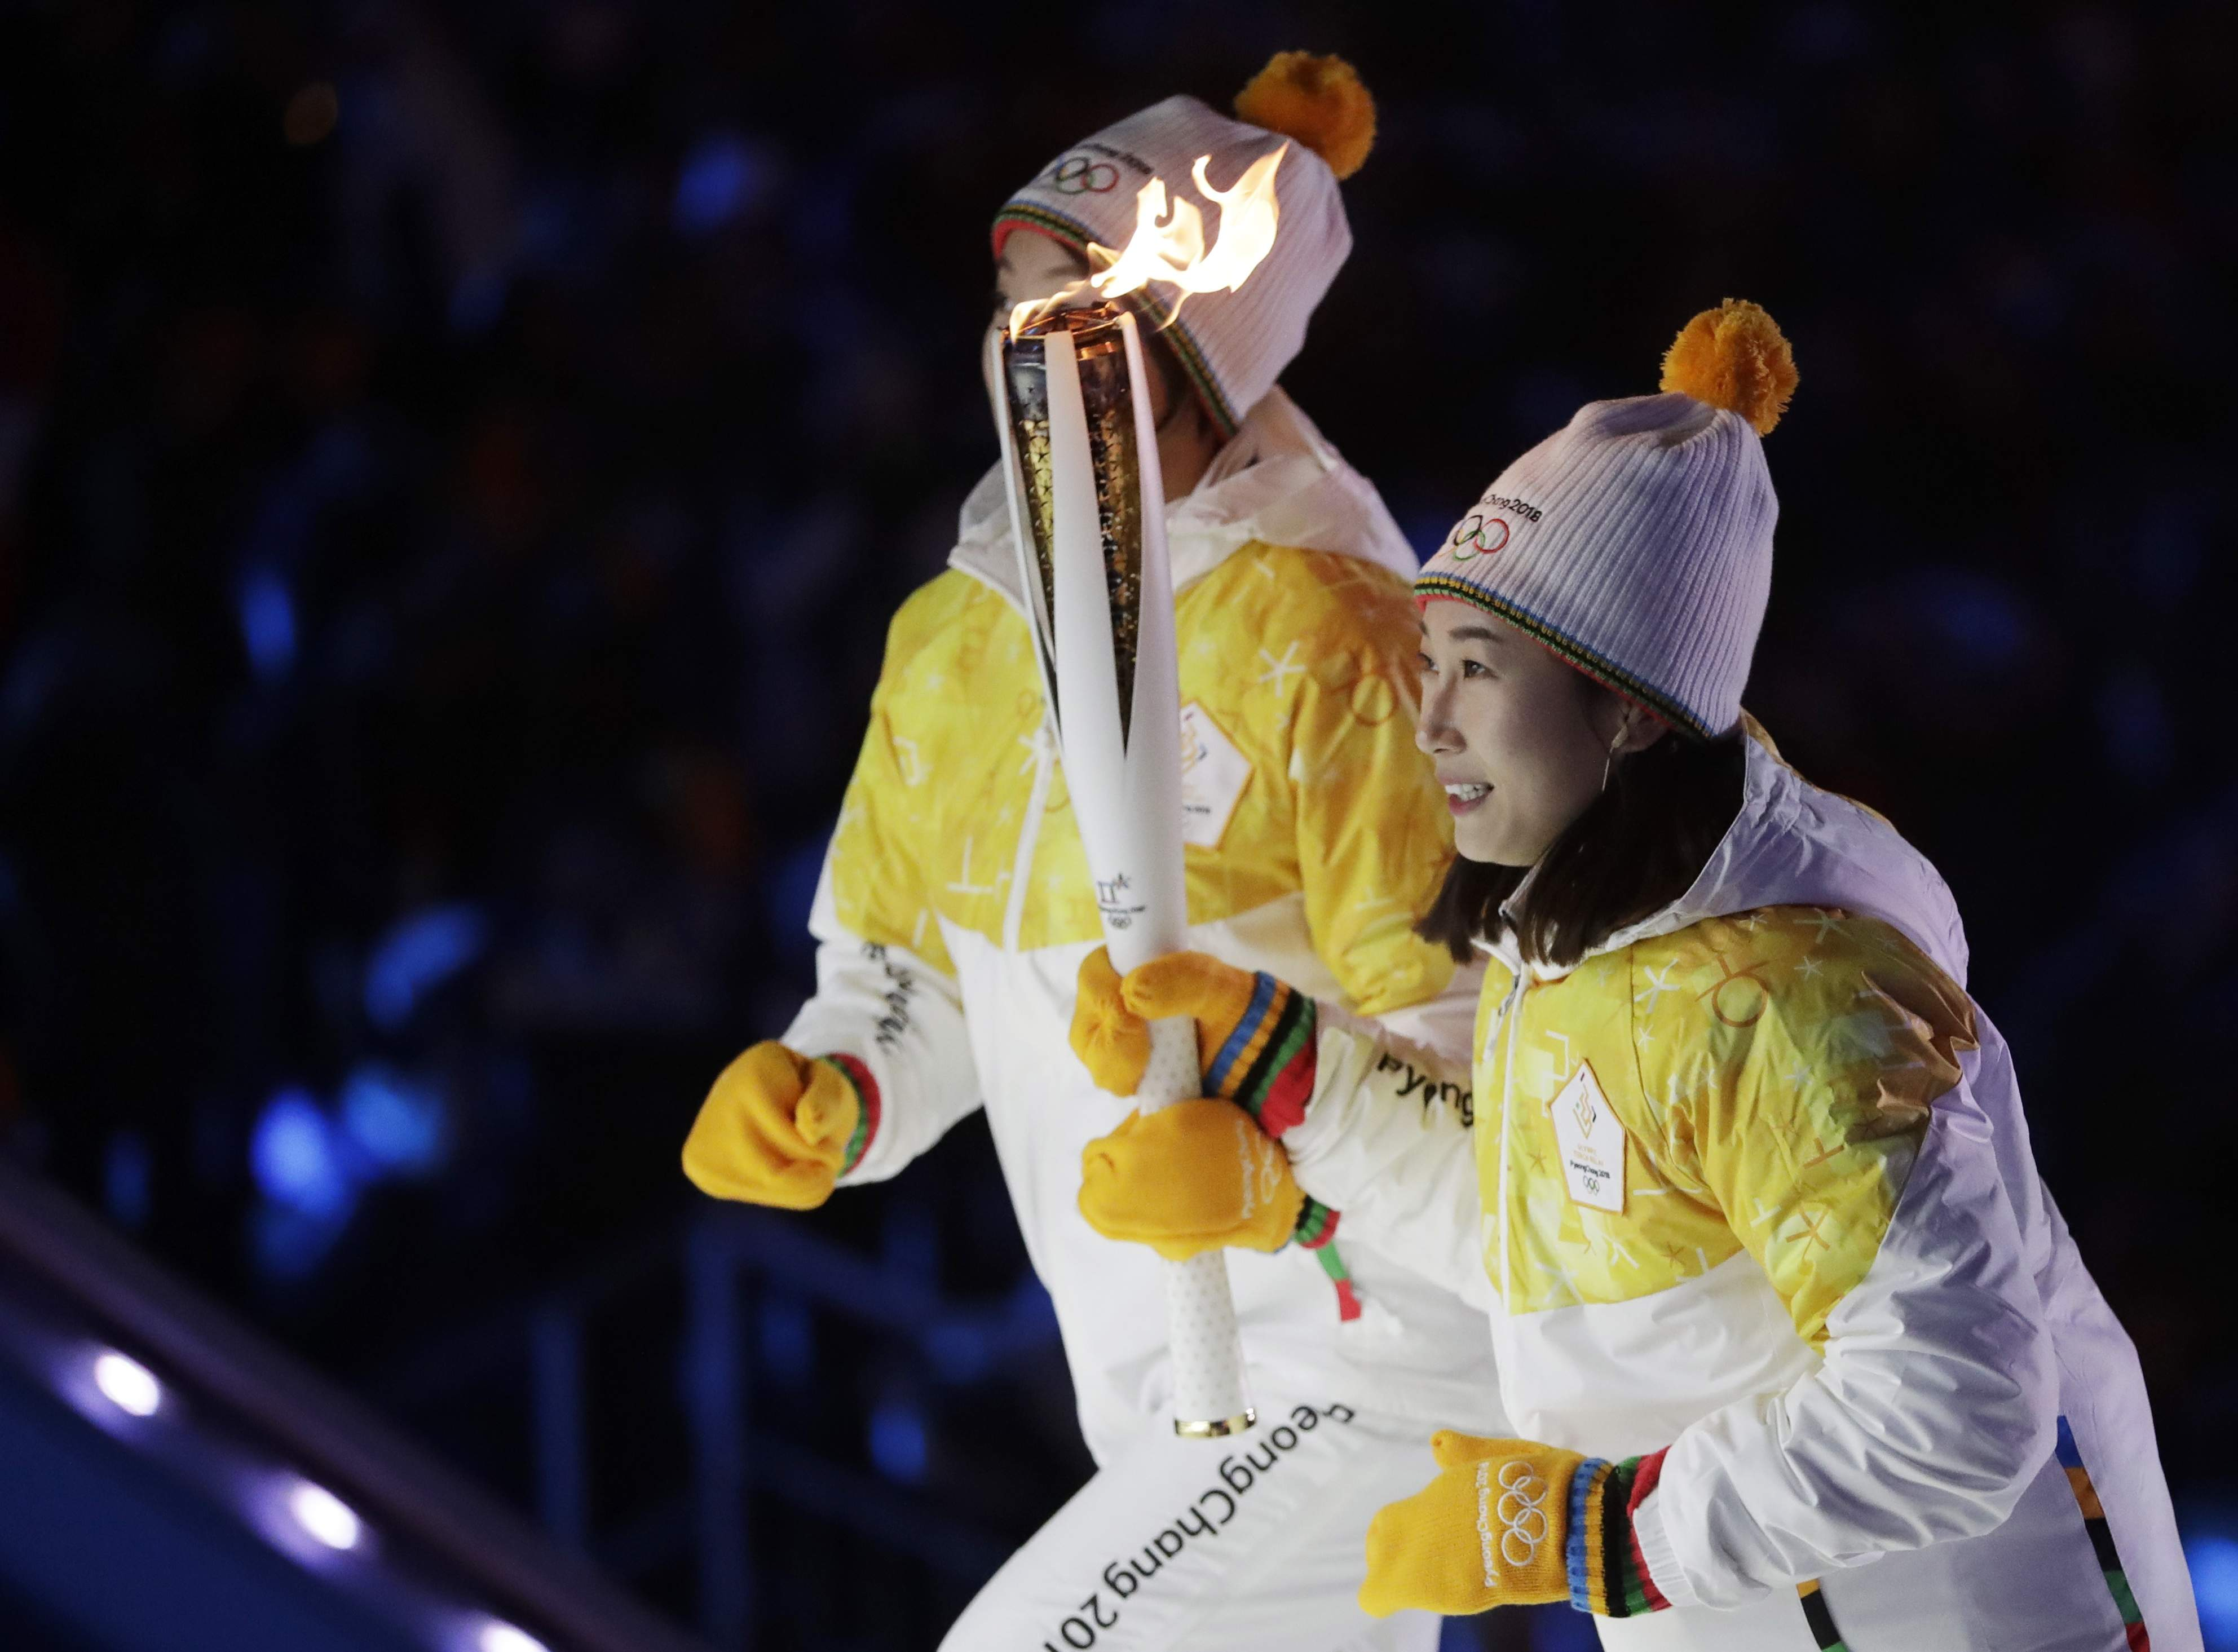 North Korea's Jong Su Hyon, left, and South Korea's Park Jong-ah carry the torch in the stadium during the opening ceremony of the 2018 Winter Olympics in Pyeongchang, South Korea, Friday, Feb. 9, 2018. (AP Photo/Matthias Schrader)